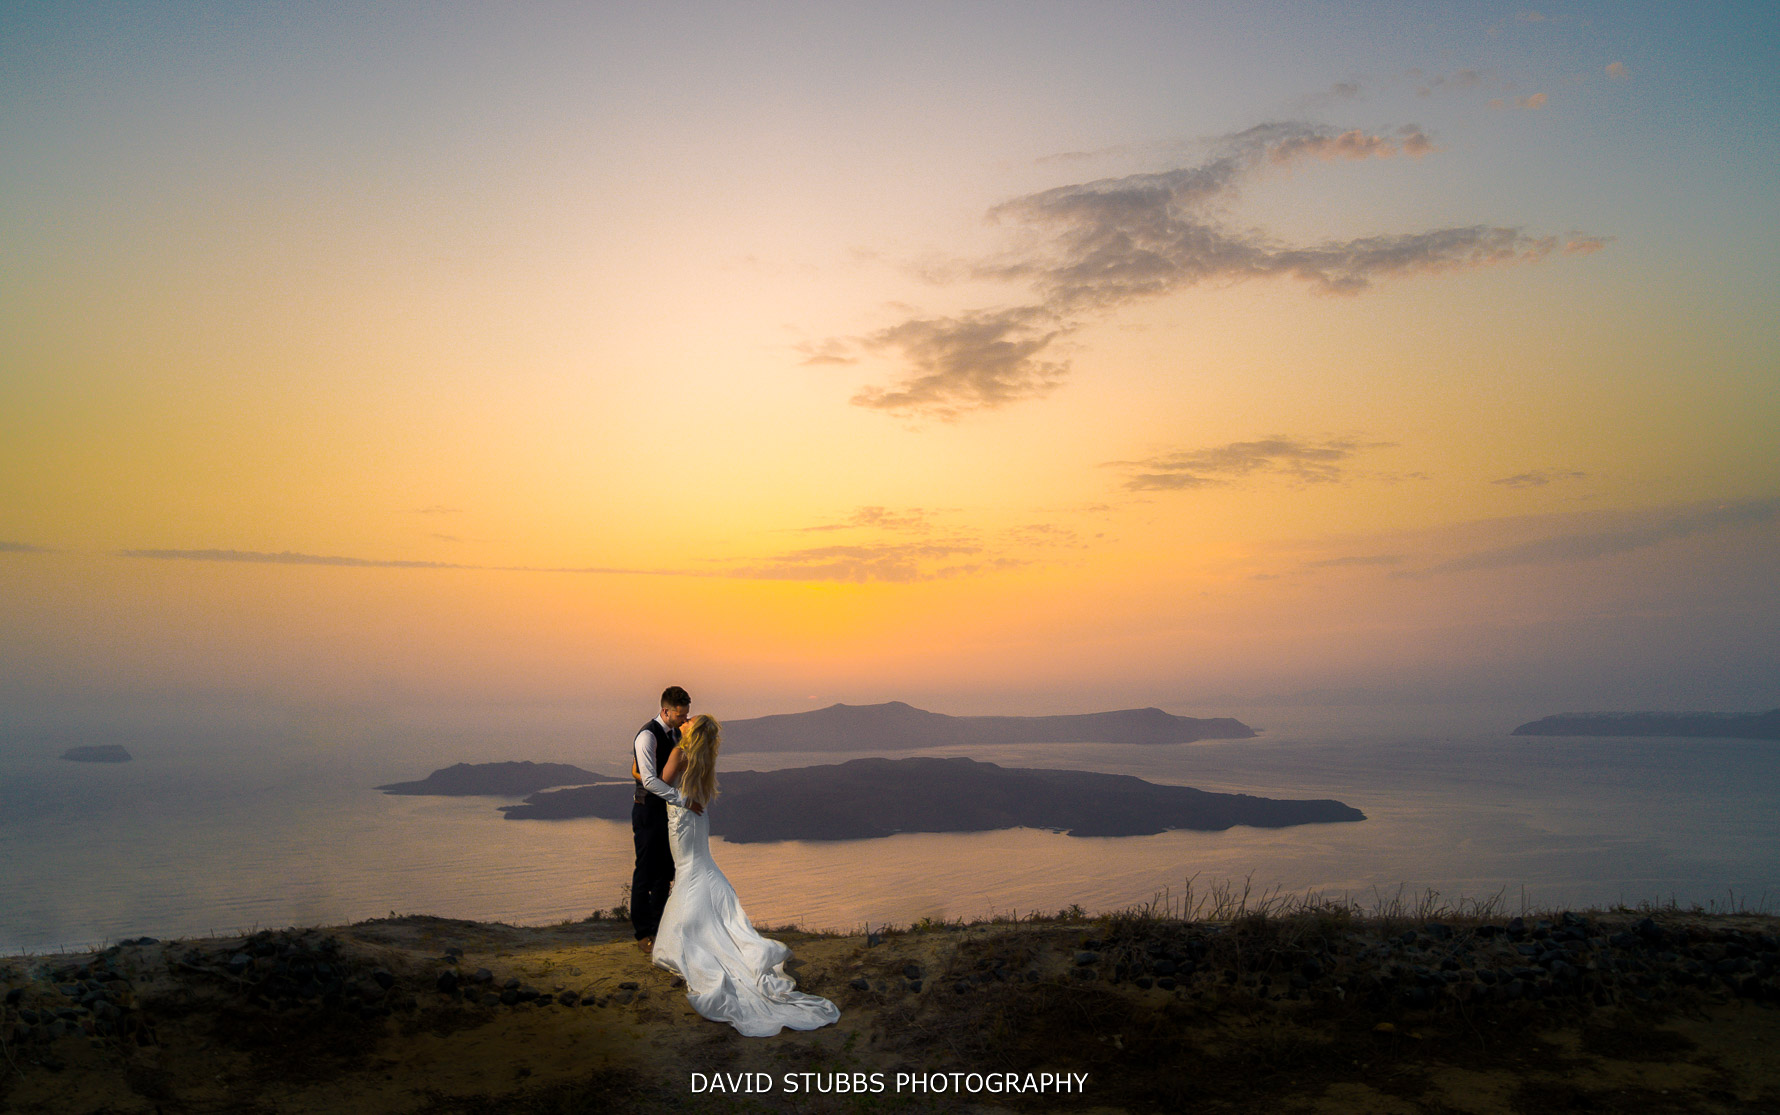 photographer of weddings at Santorini